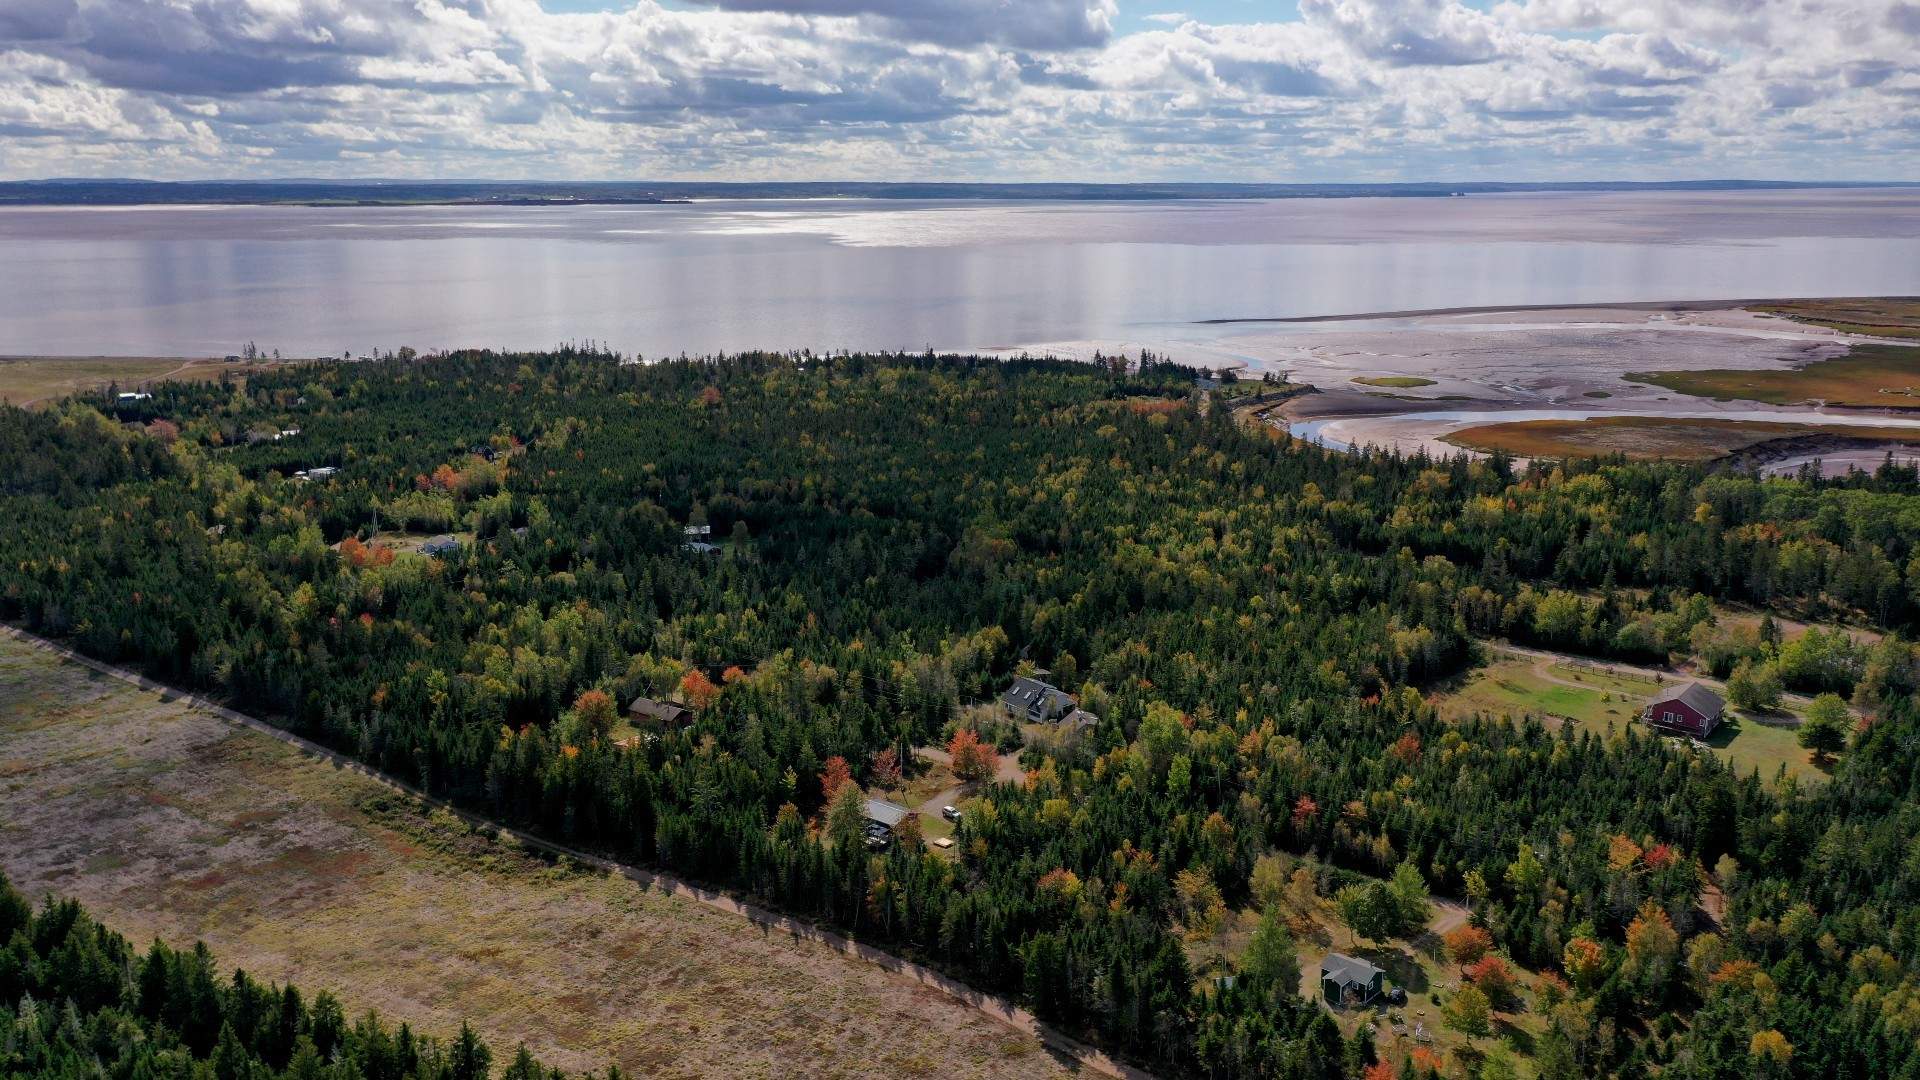 Portapique is nestled on the shores of Cobequid Bay, which leads into the Bay of Fundy. Along the eastern edge, there is a dirt road along a blueberry field that the gunman used to get out of the community. (Steve Lawrence/CBC)